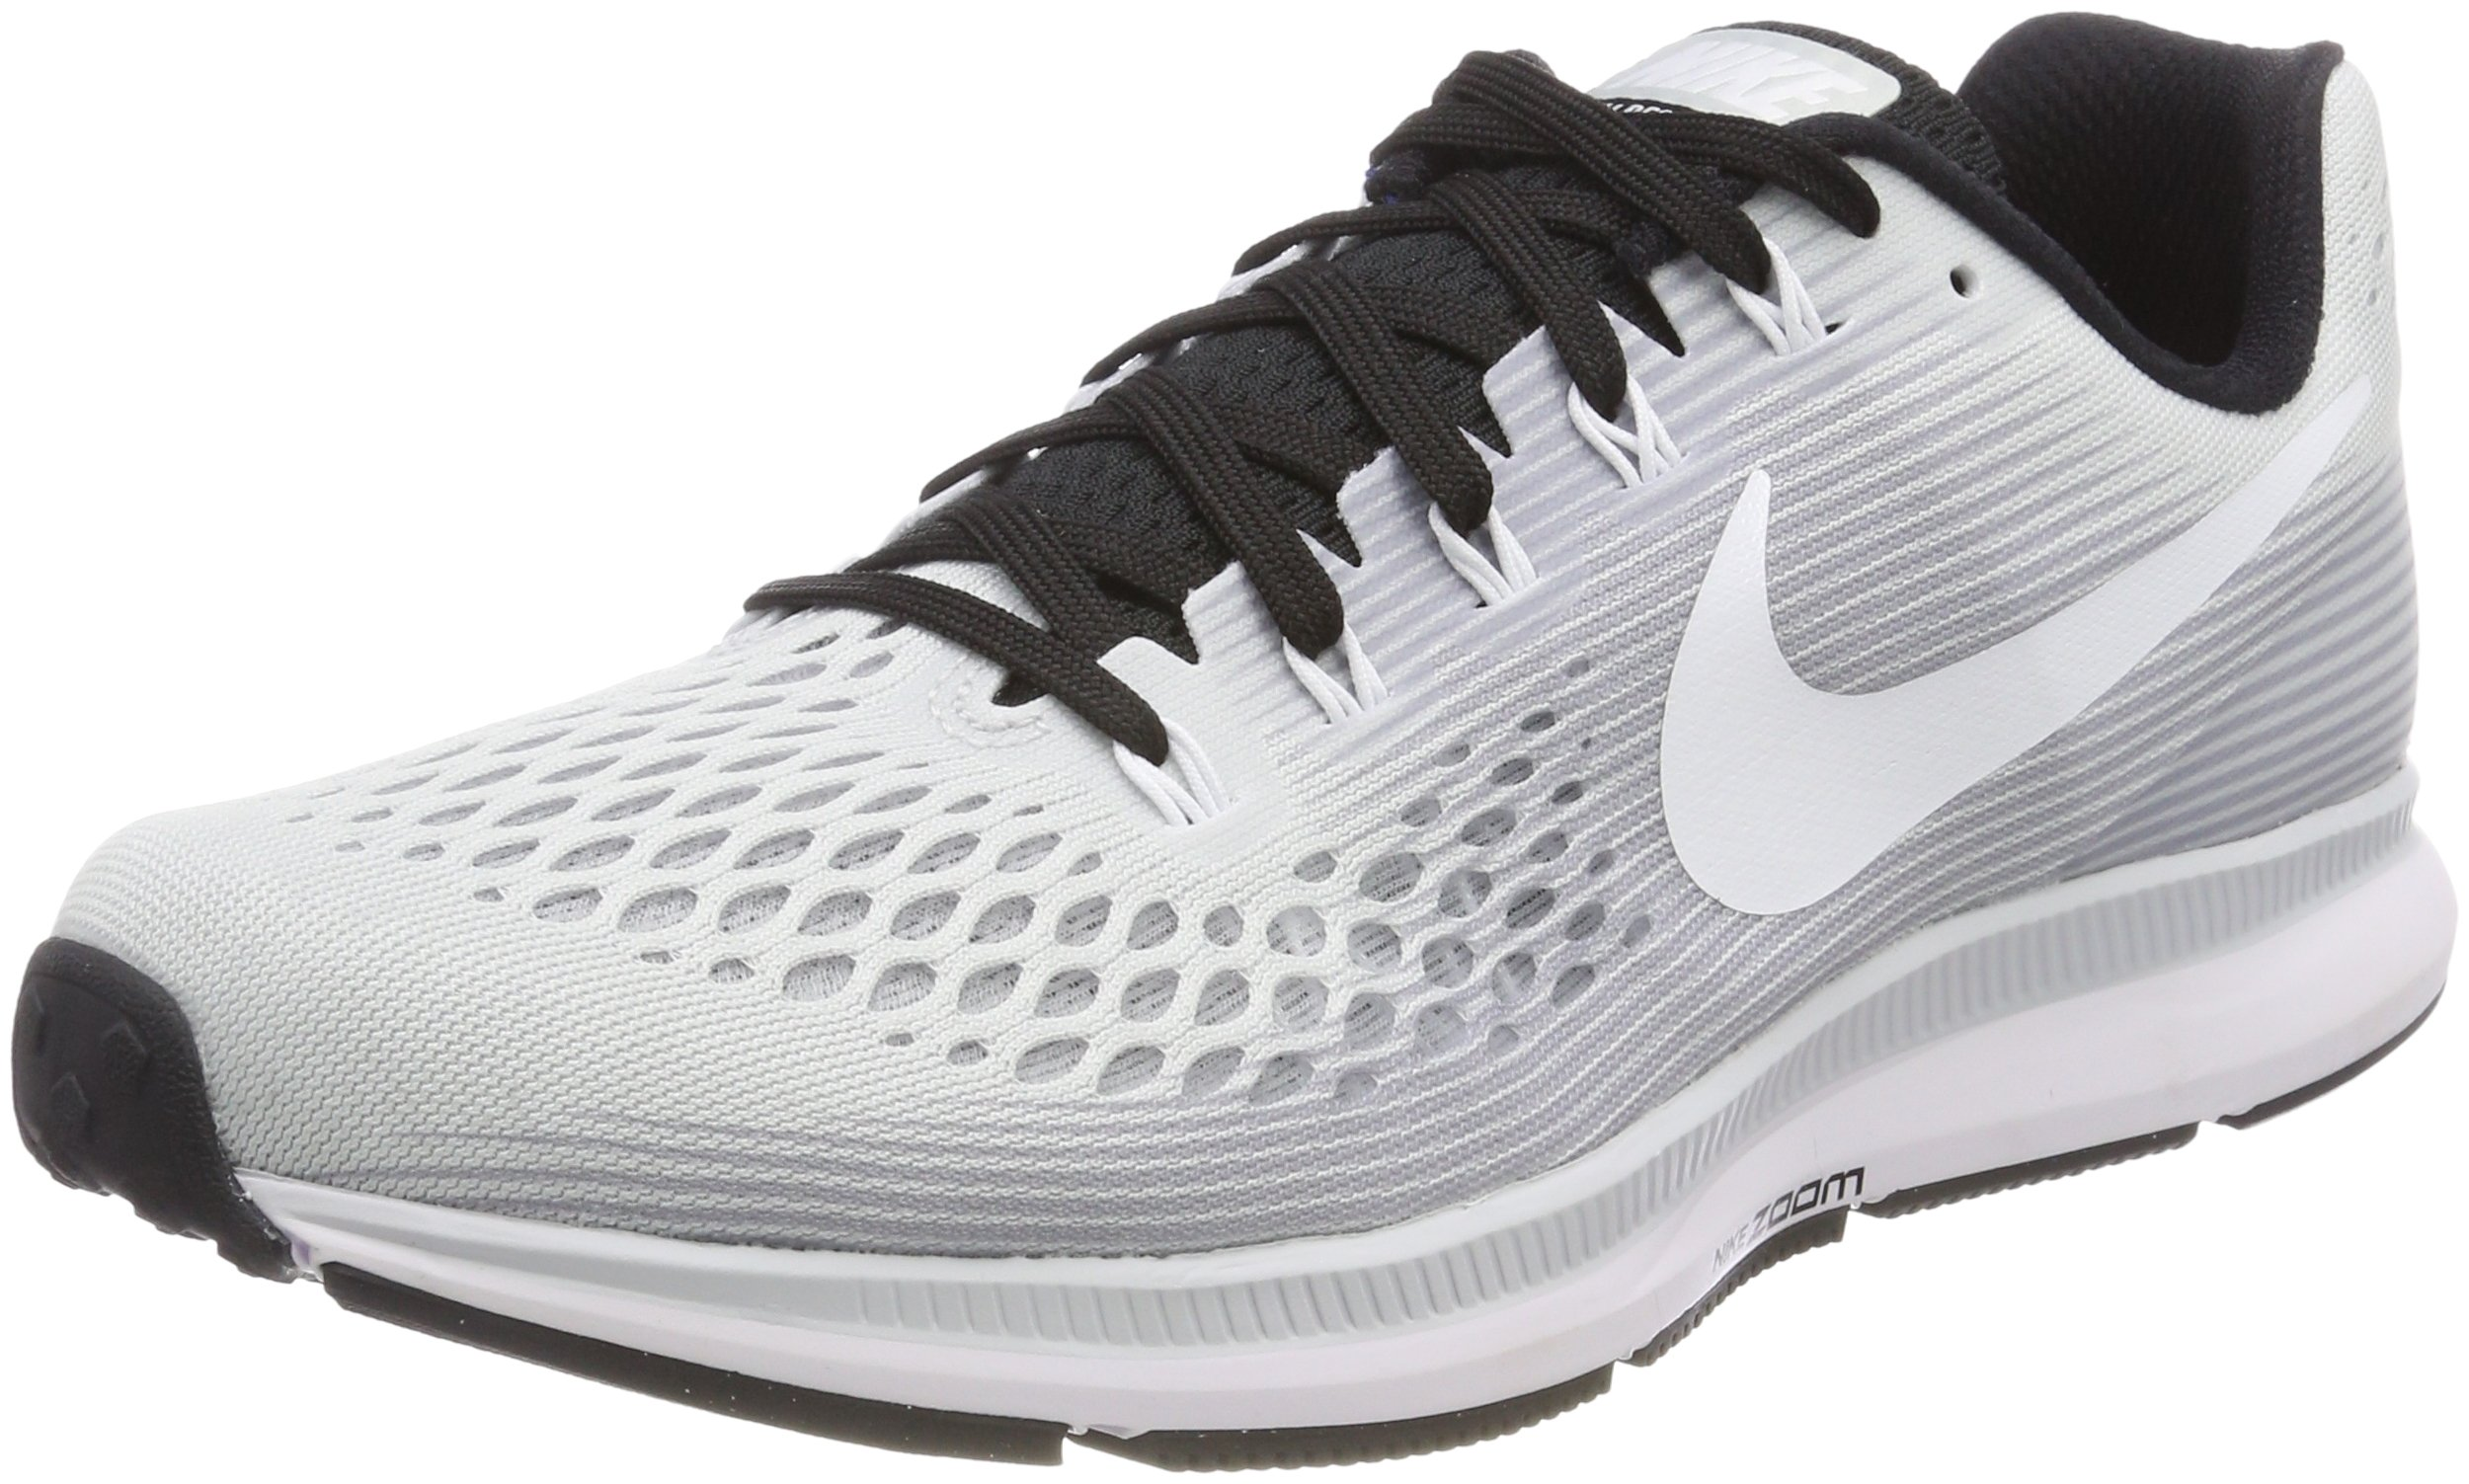 b76b0c0495150 Nike Air Zoom Pegasus 34 Mens Running Shoes nk887009 002 (Black/Dark  Grey/Anthracite/White, 12 D(M) US)